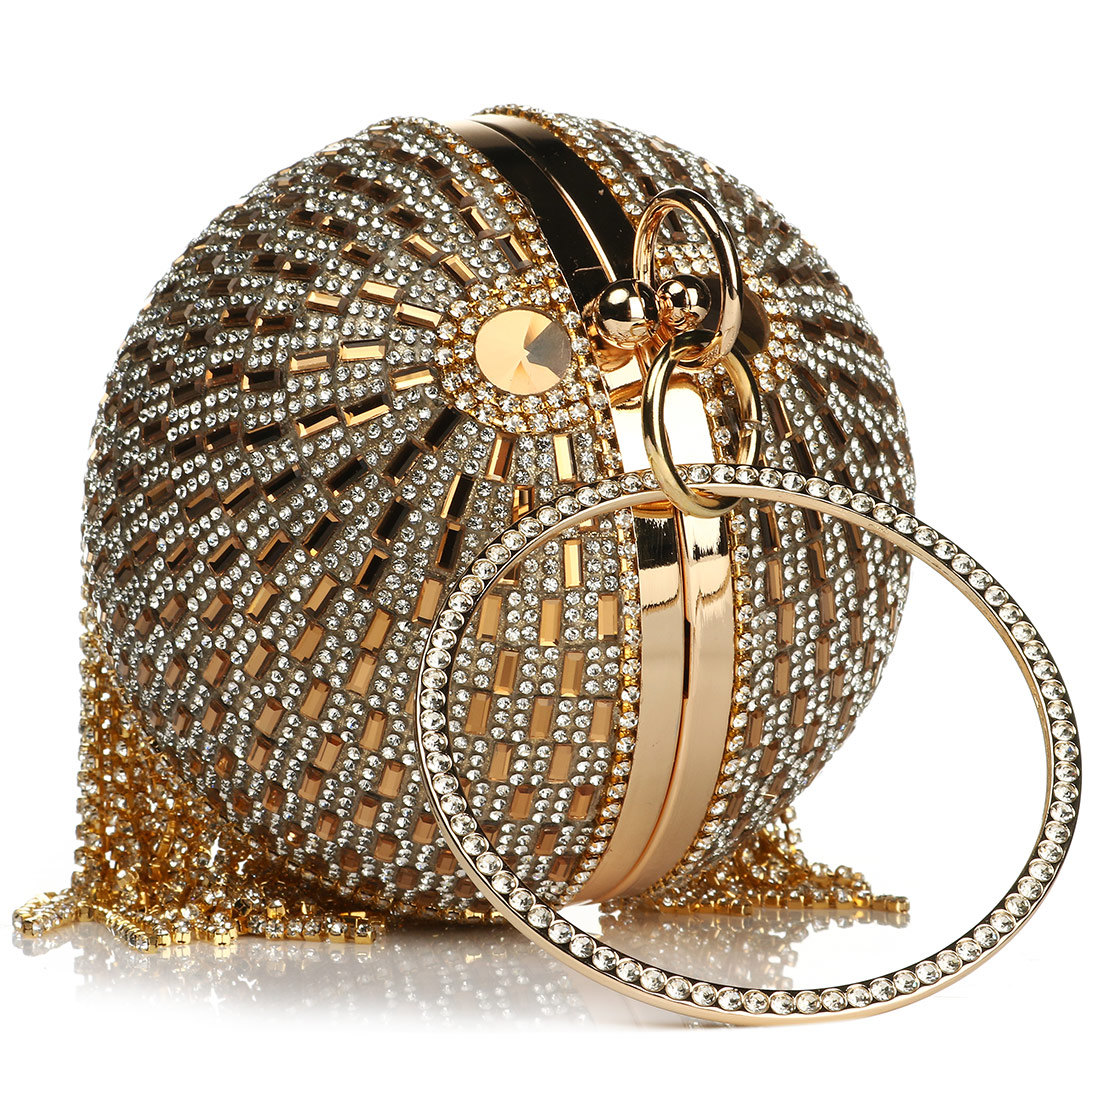 H00ec50b00b5c4822b390bd48215588b9p - Sliver Diamonds Rhinestone Round Ball Evening Bags For Women Fashion Mini Tassels Clutch Bag Ladies Ring Handbag Clutches